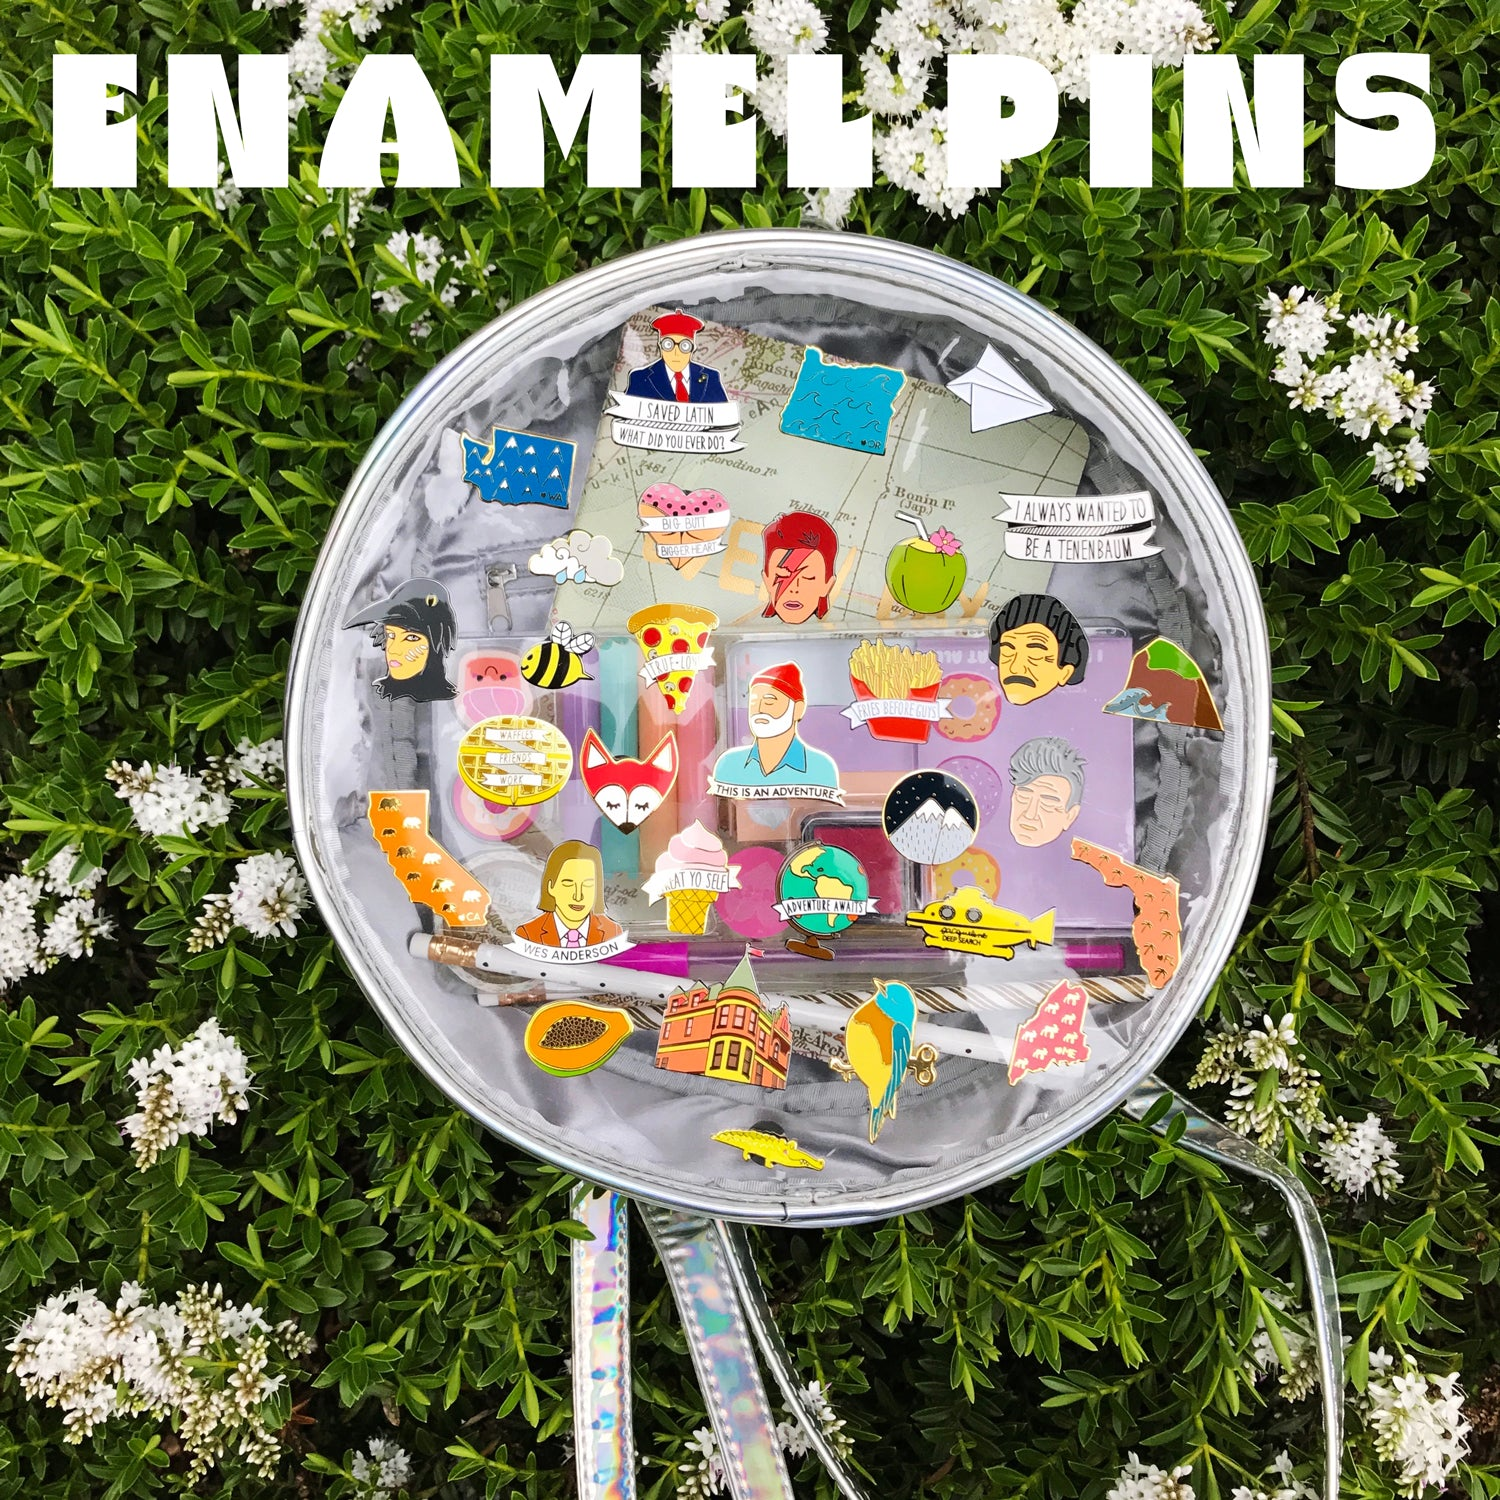 Various enamel pins on a holographic circle purse with clear window on a flowery bush